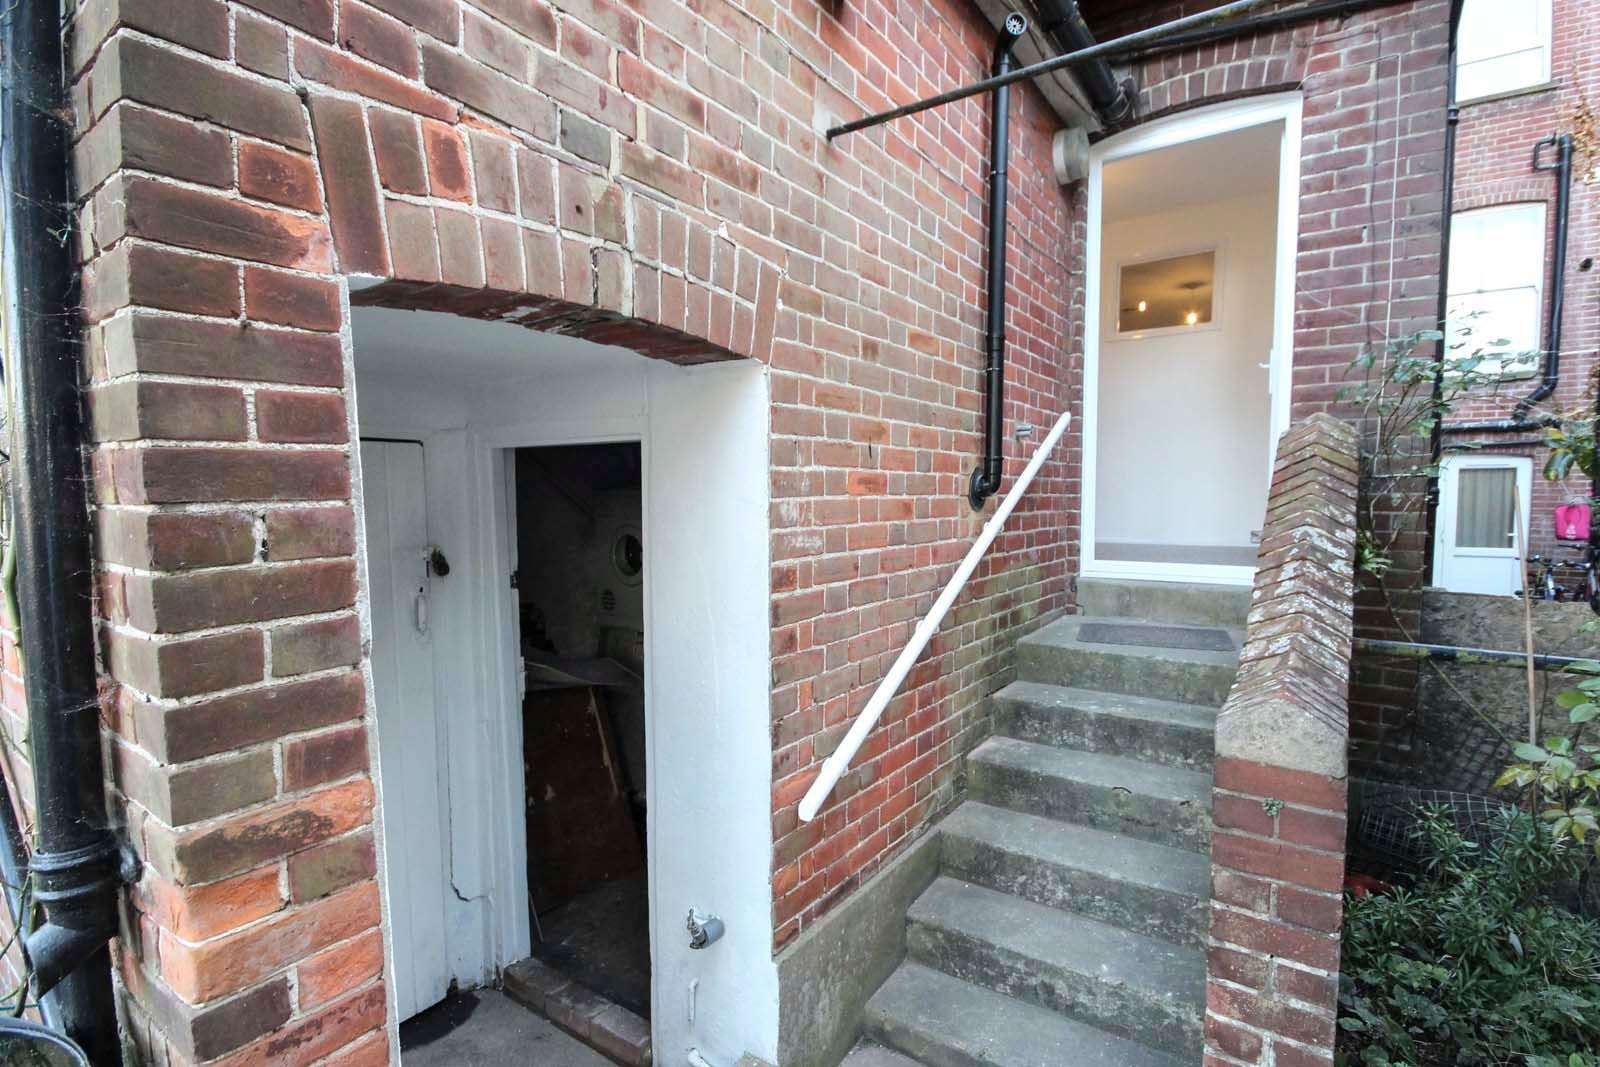 1 bed Apartment to rent in Littlehampton - Steps to rear (Property Image 11)